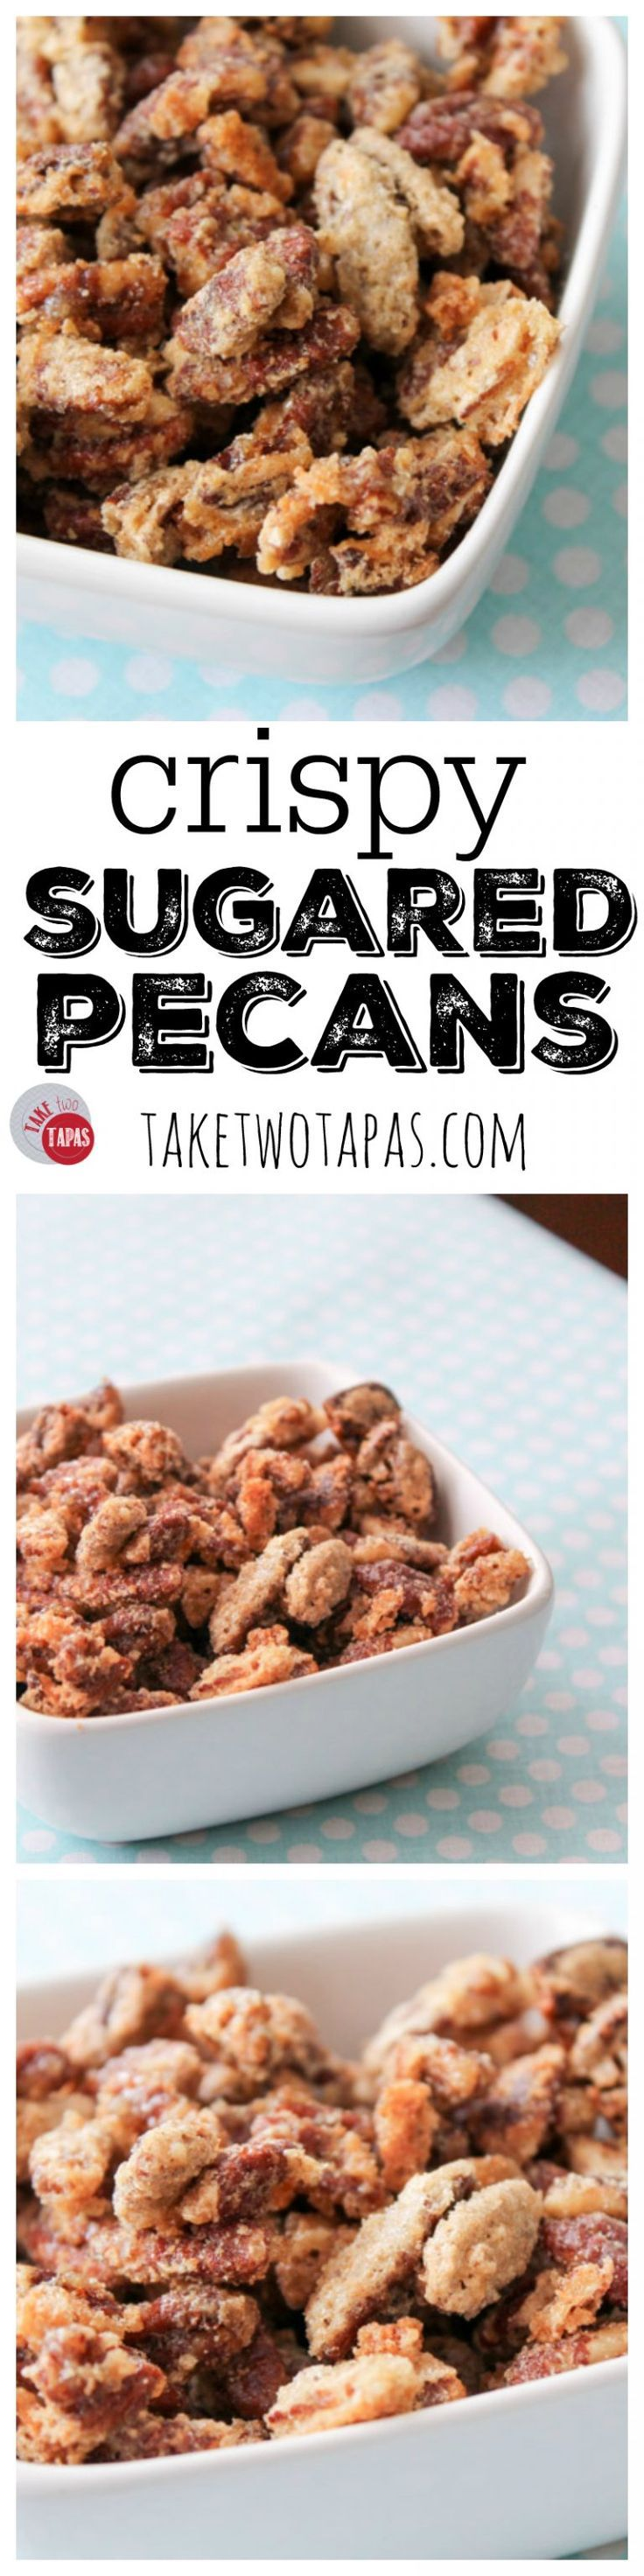 Crispy Sugared Pecans are a sweet and crunchy snack that is great to top your yogurt, your ice cream, or just to eat by the handful. Crispy Sugared Pecans Recipe | Take Two Tapas